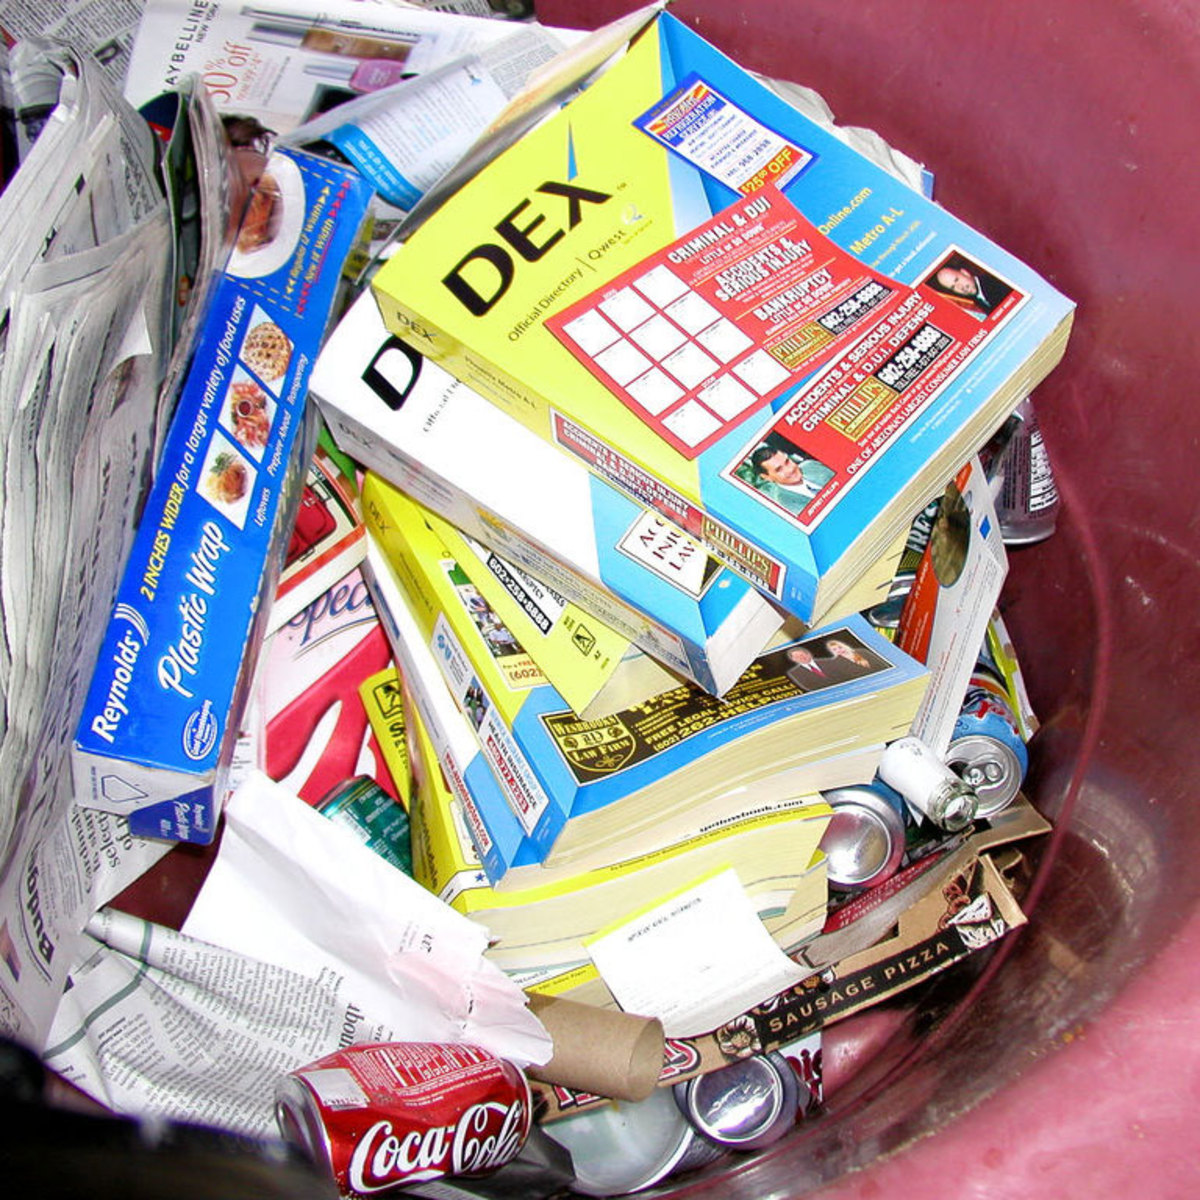 How to Stop Unwanted Phone Books / Phone Directory Deliveries